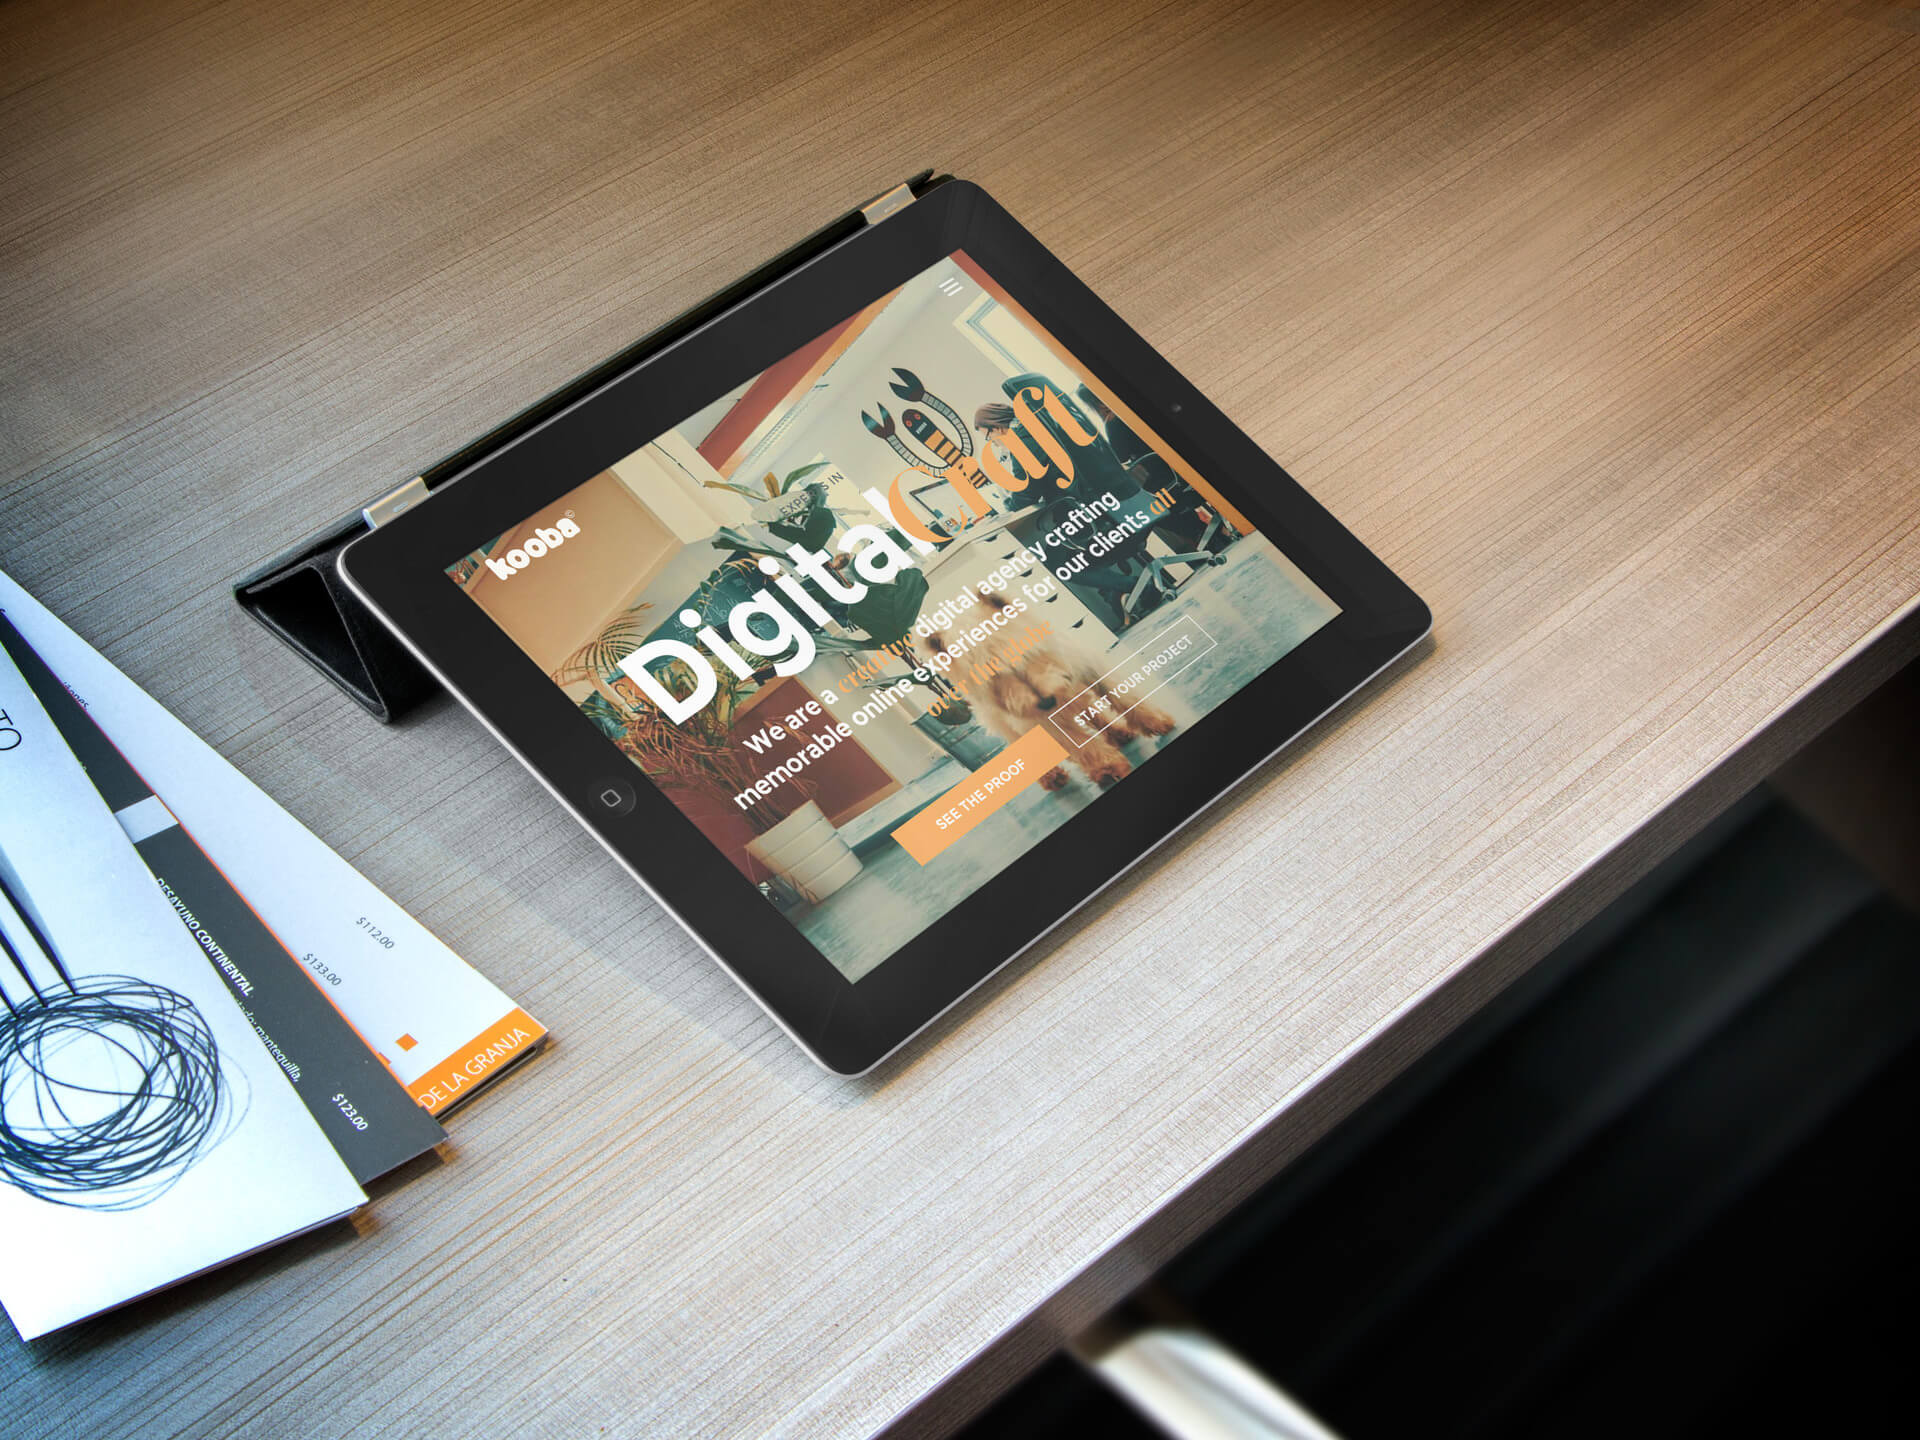 Black iPad Mockup Sitting on a Table Featuring a Design Website